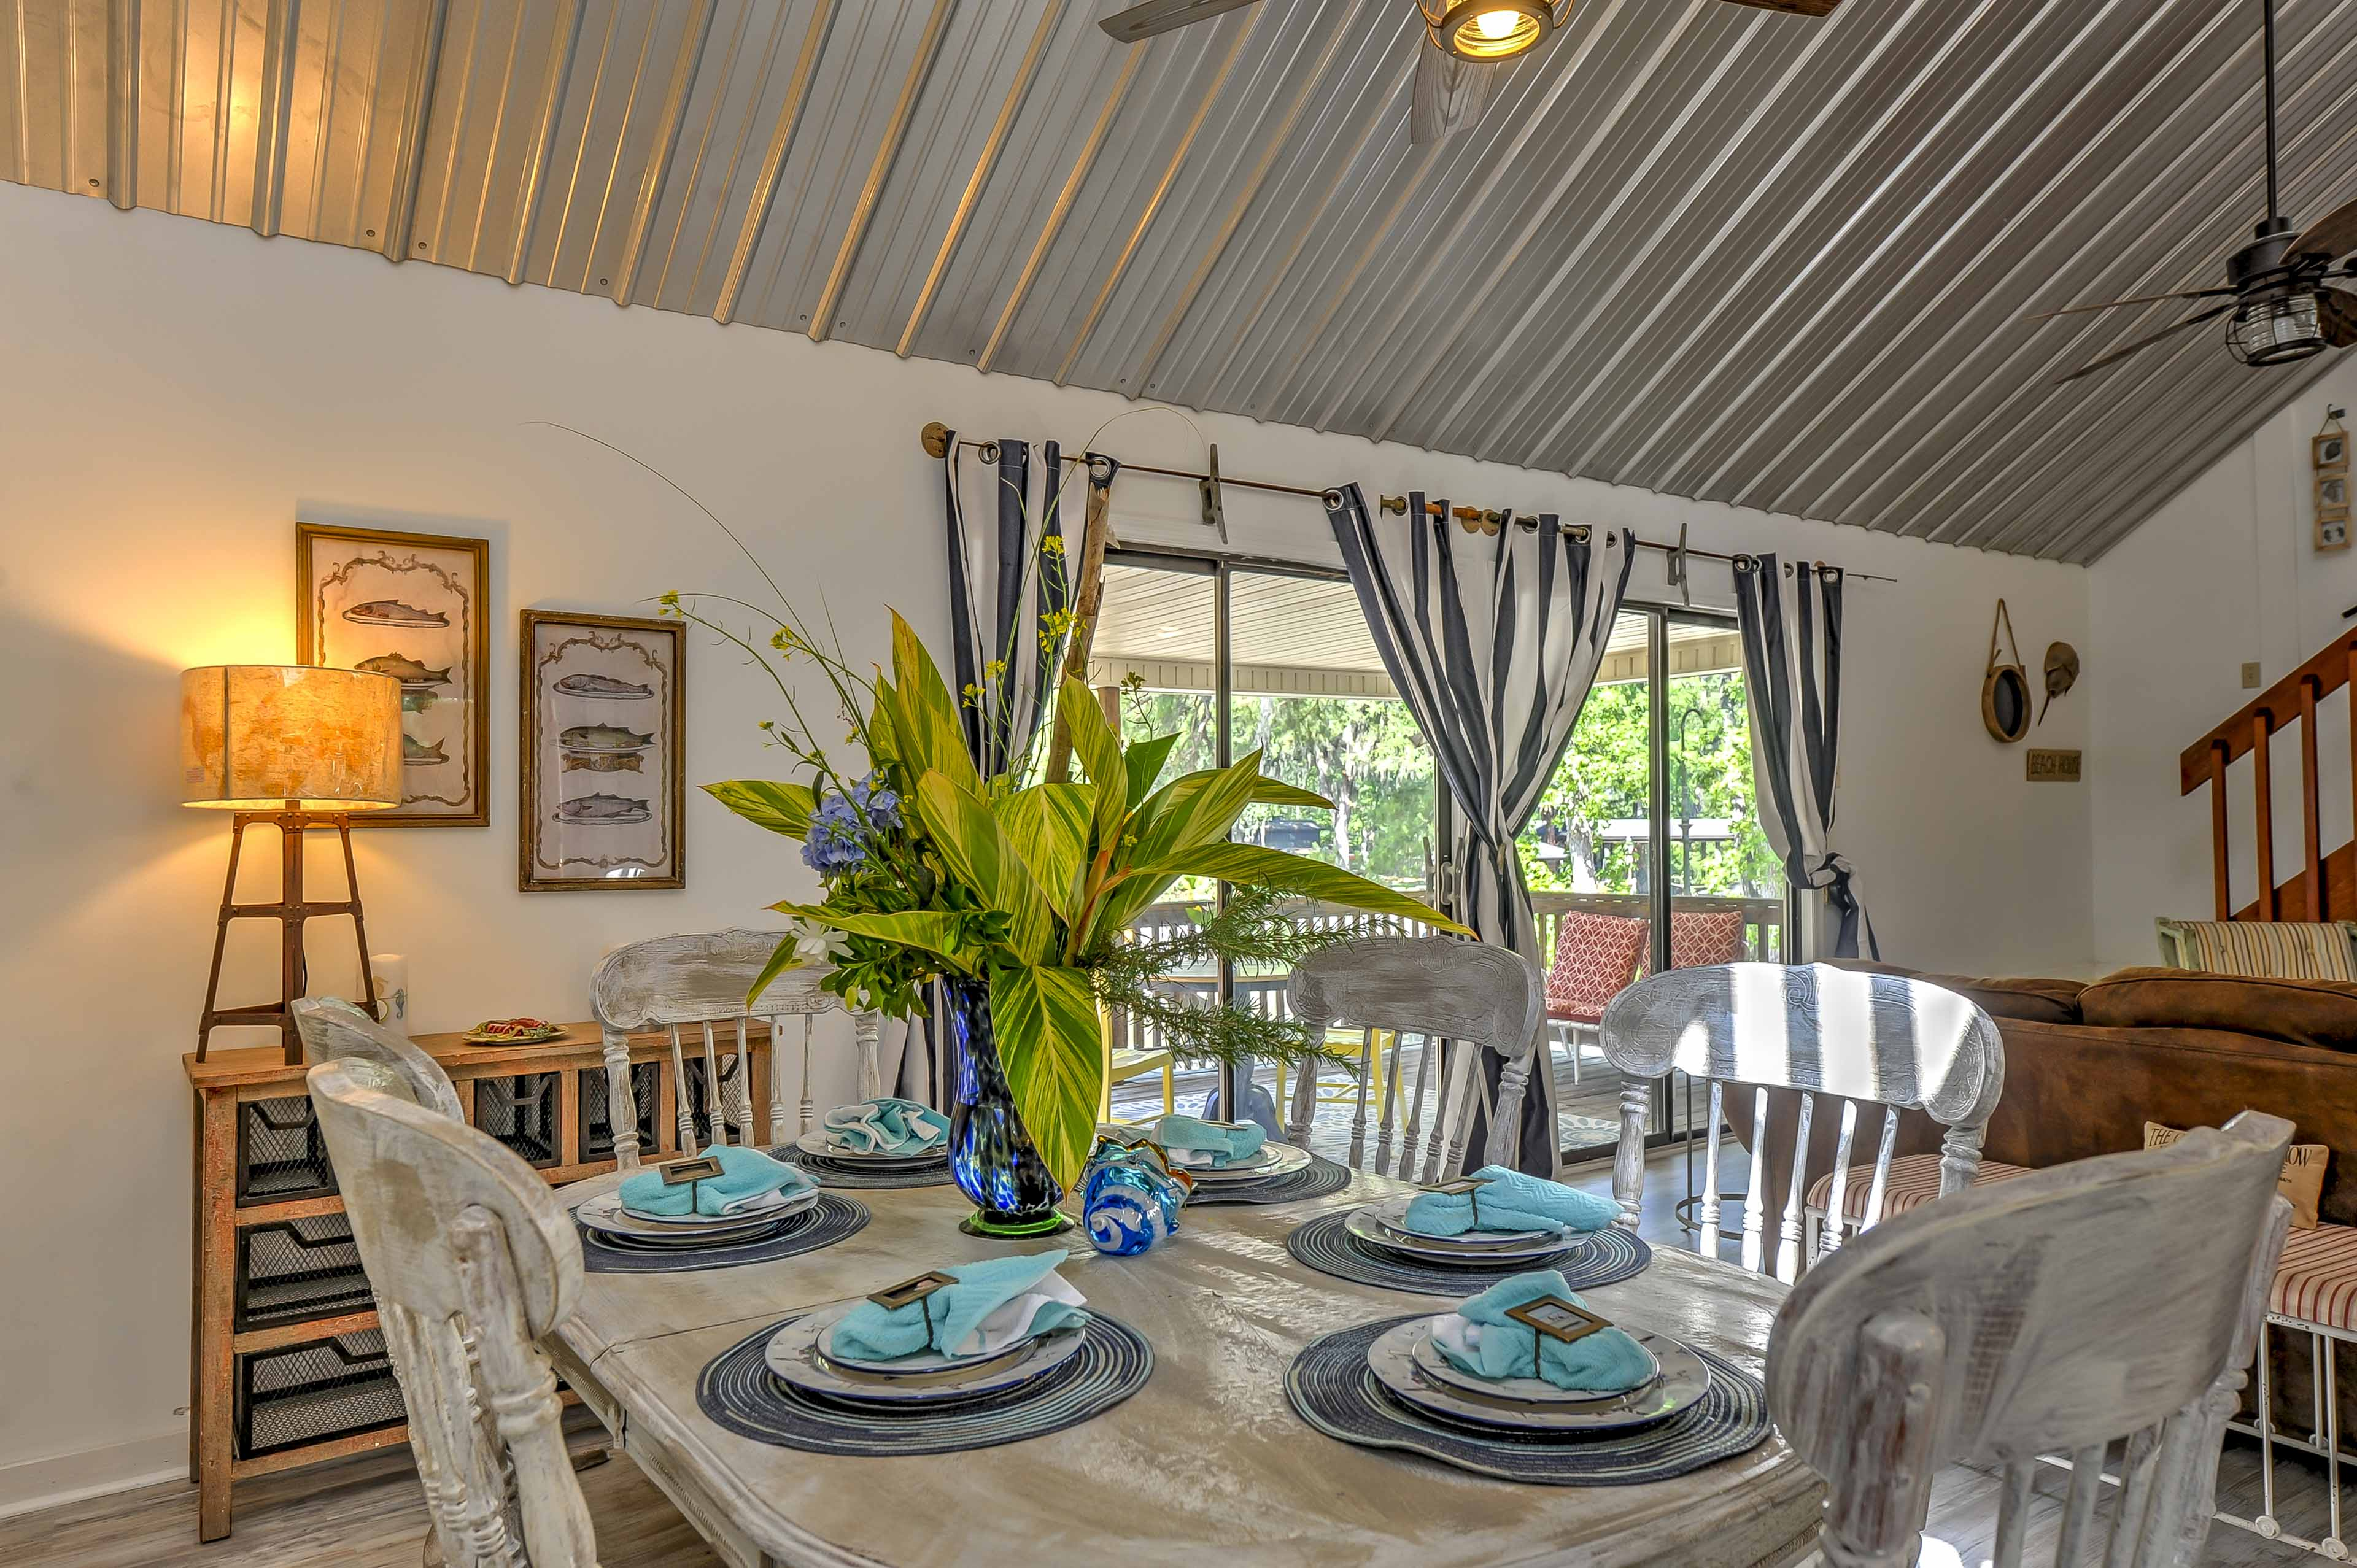 Dine in style at this large dining table.